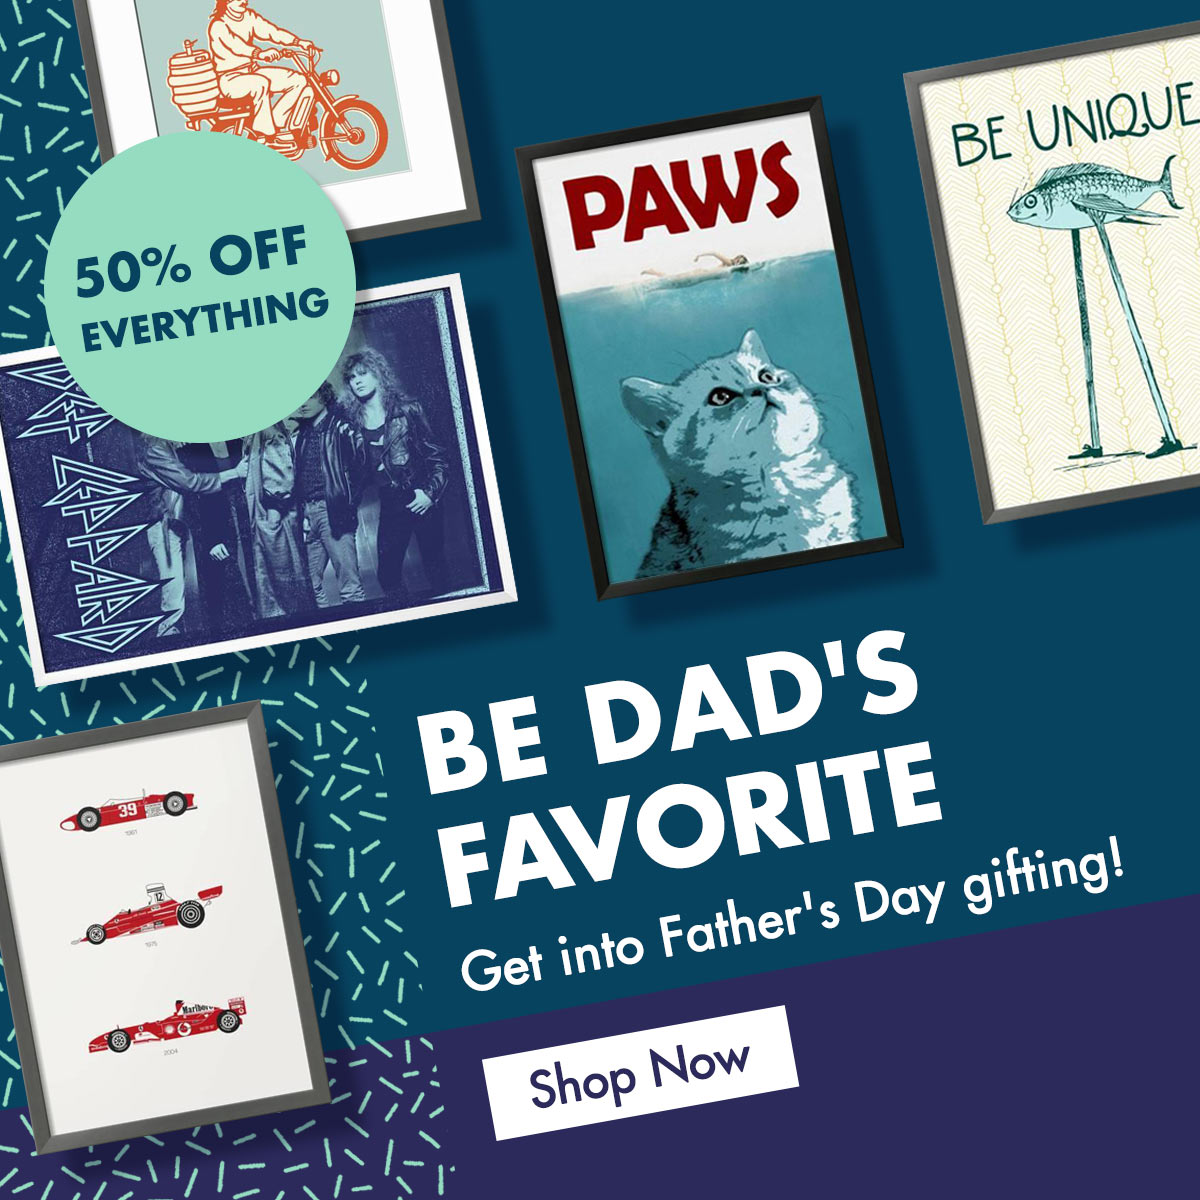 Be Dad's Favorite. Get into Father's Day gifting! Shop Now